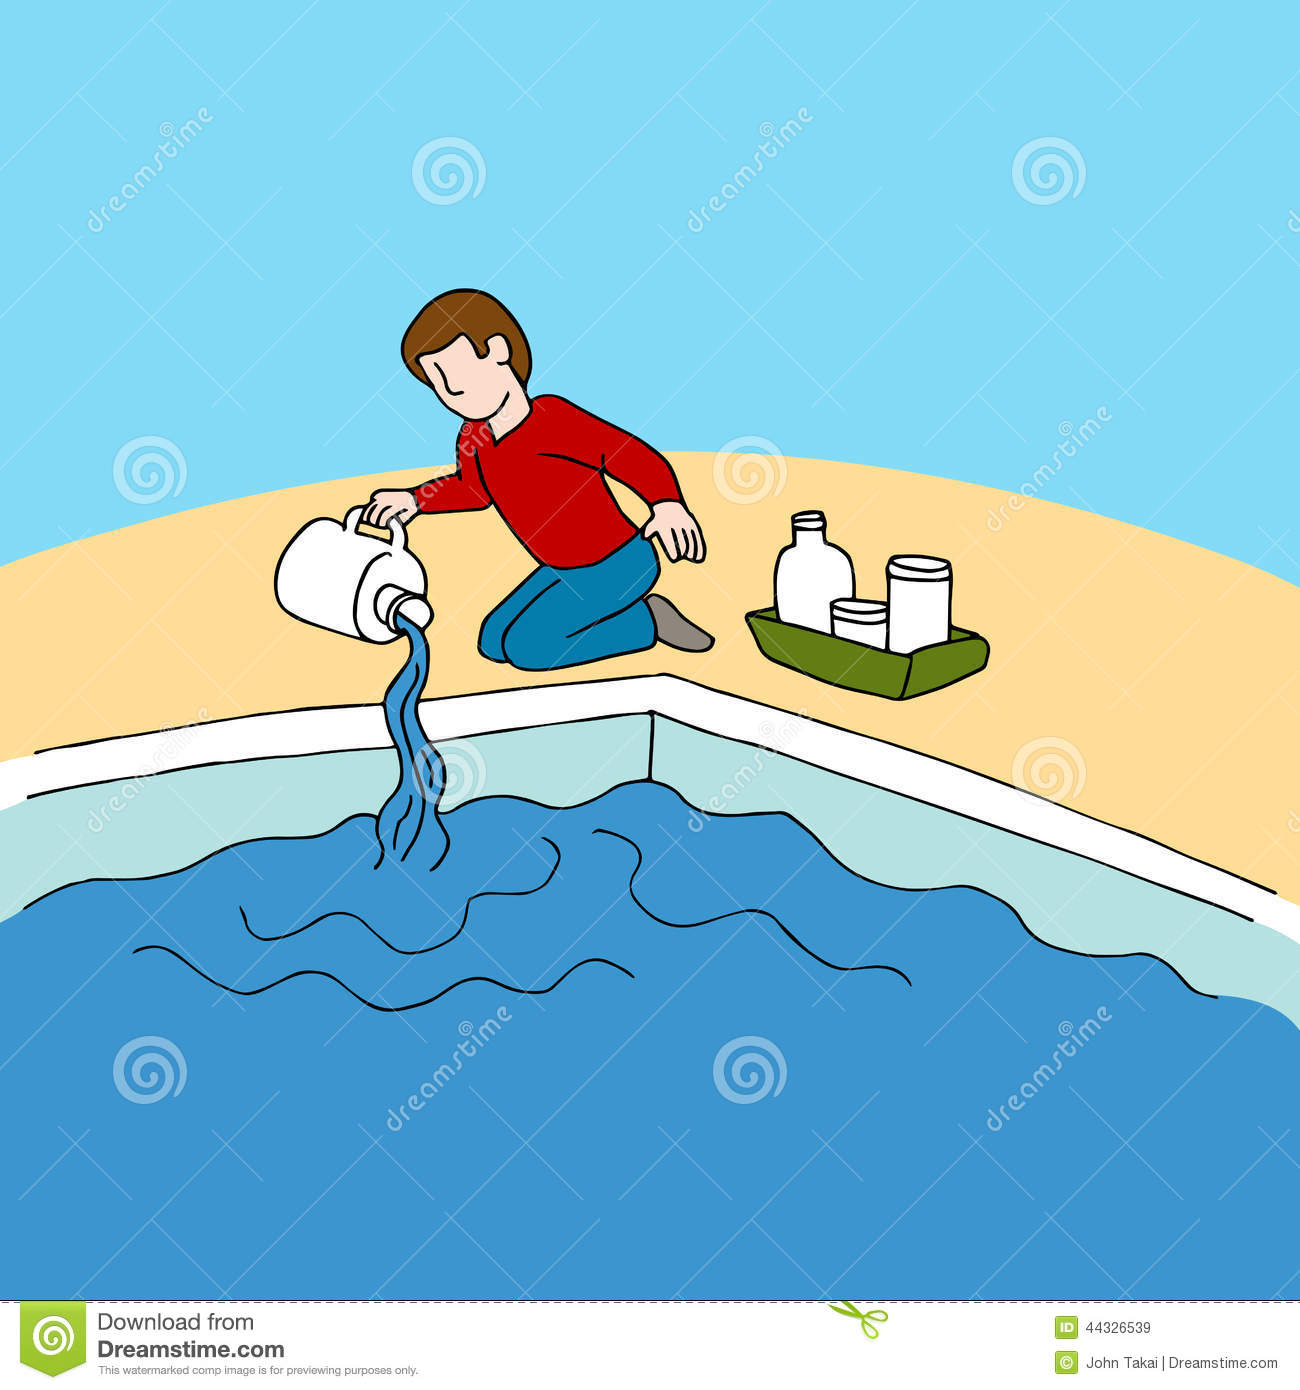 Swimming Pool Cleaning Clip Art : Pool chemicals cartoon vector cartoondealer